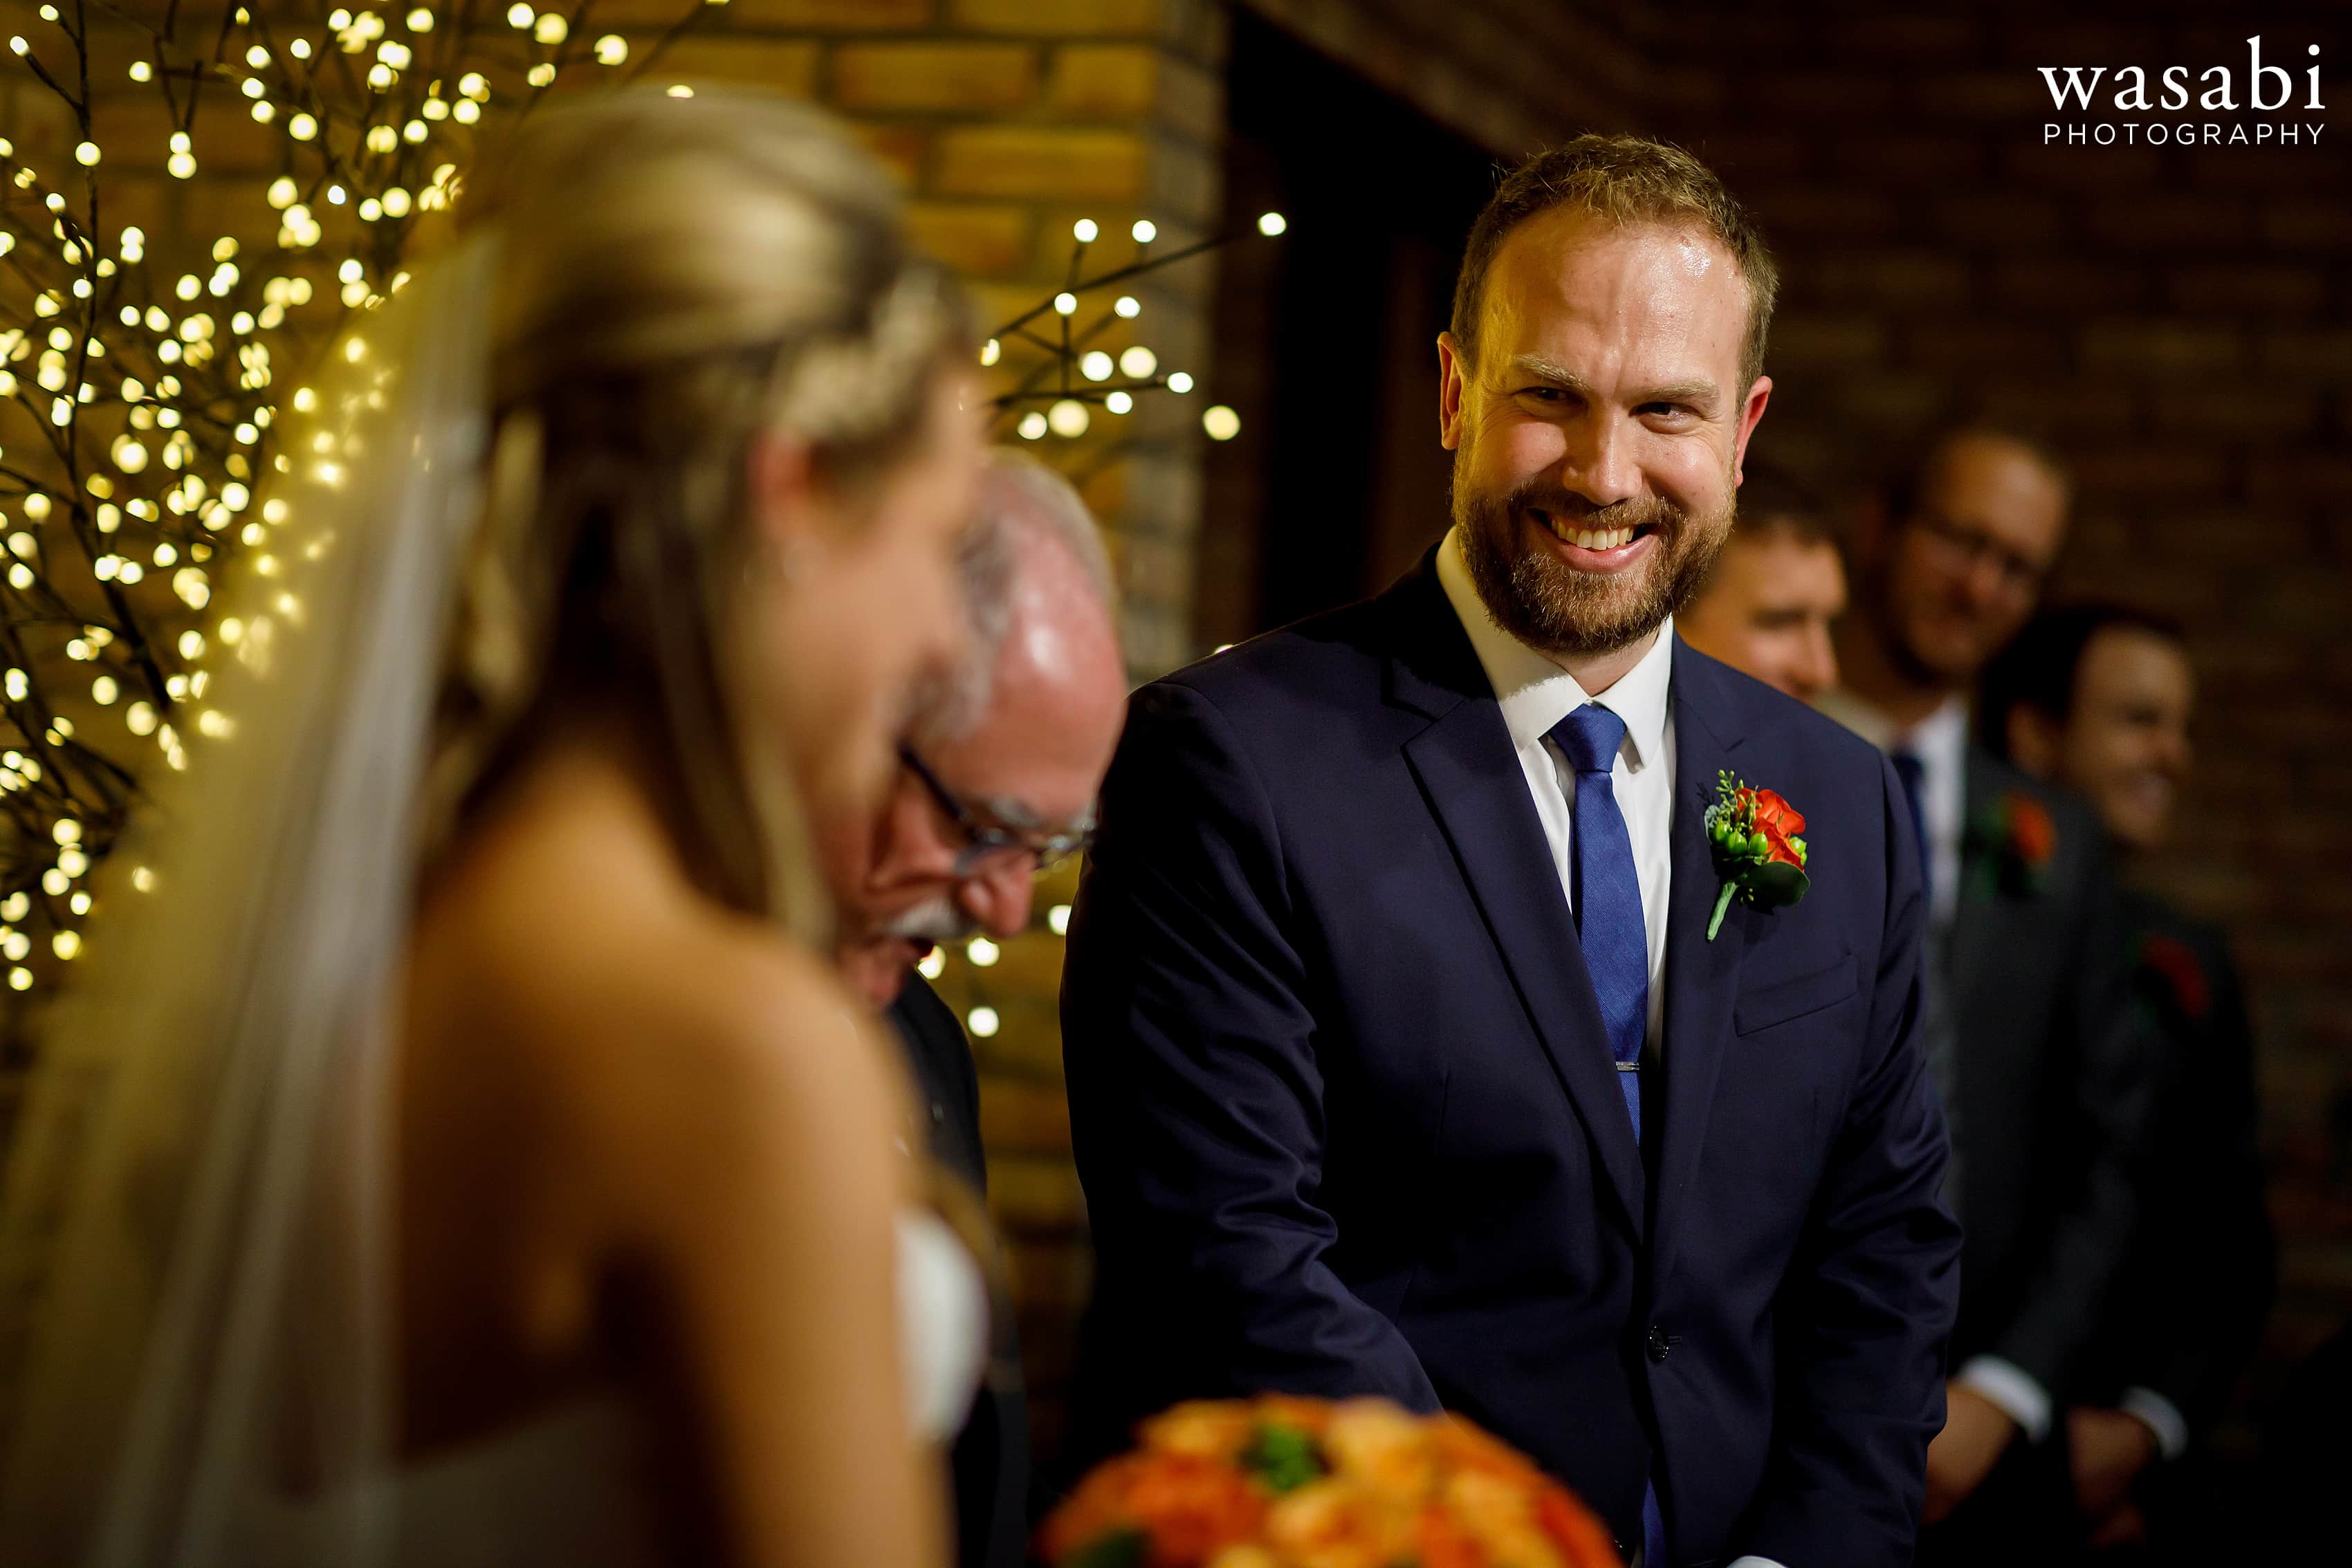 groom smiles at bride during their wedding at Eberhard Center in downtown Grand Rapids